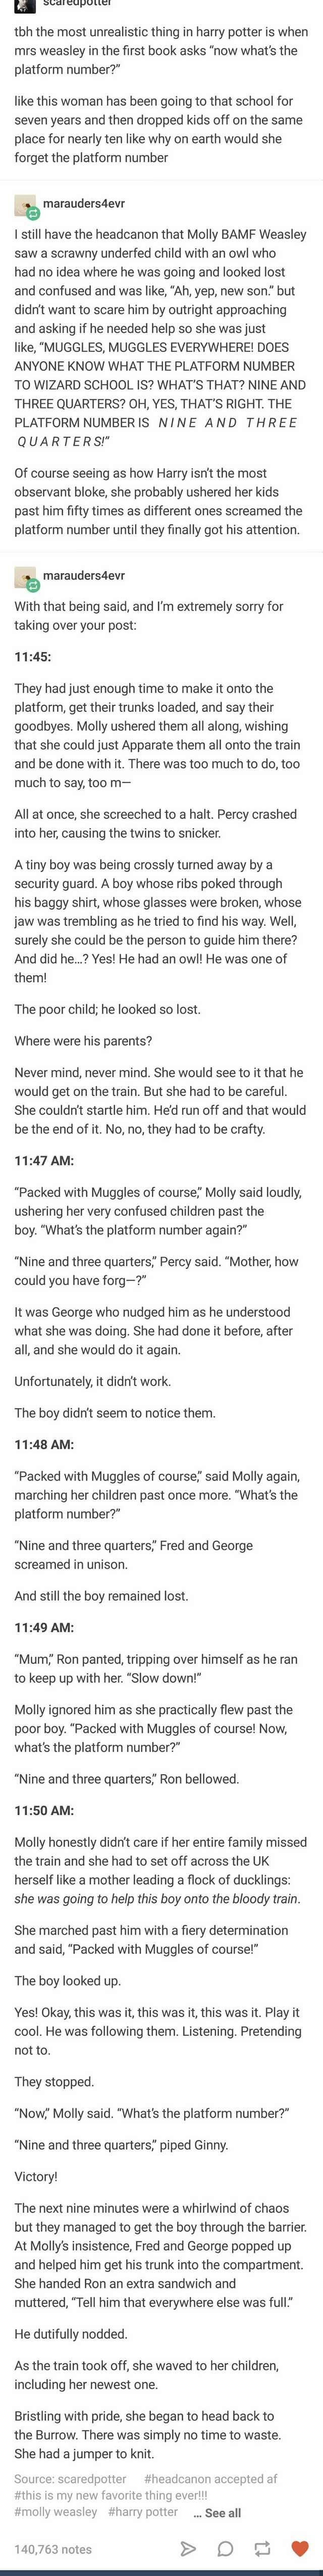 In case anyone is still wondering why Molly was asking about the platform number.